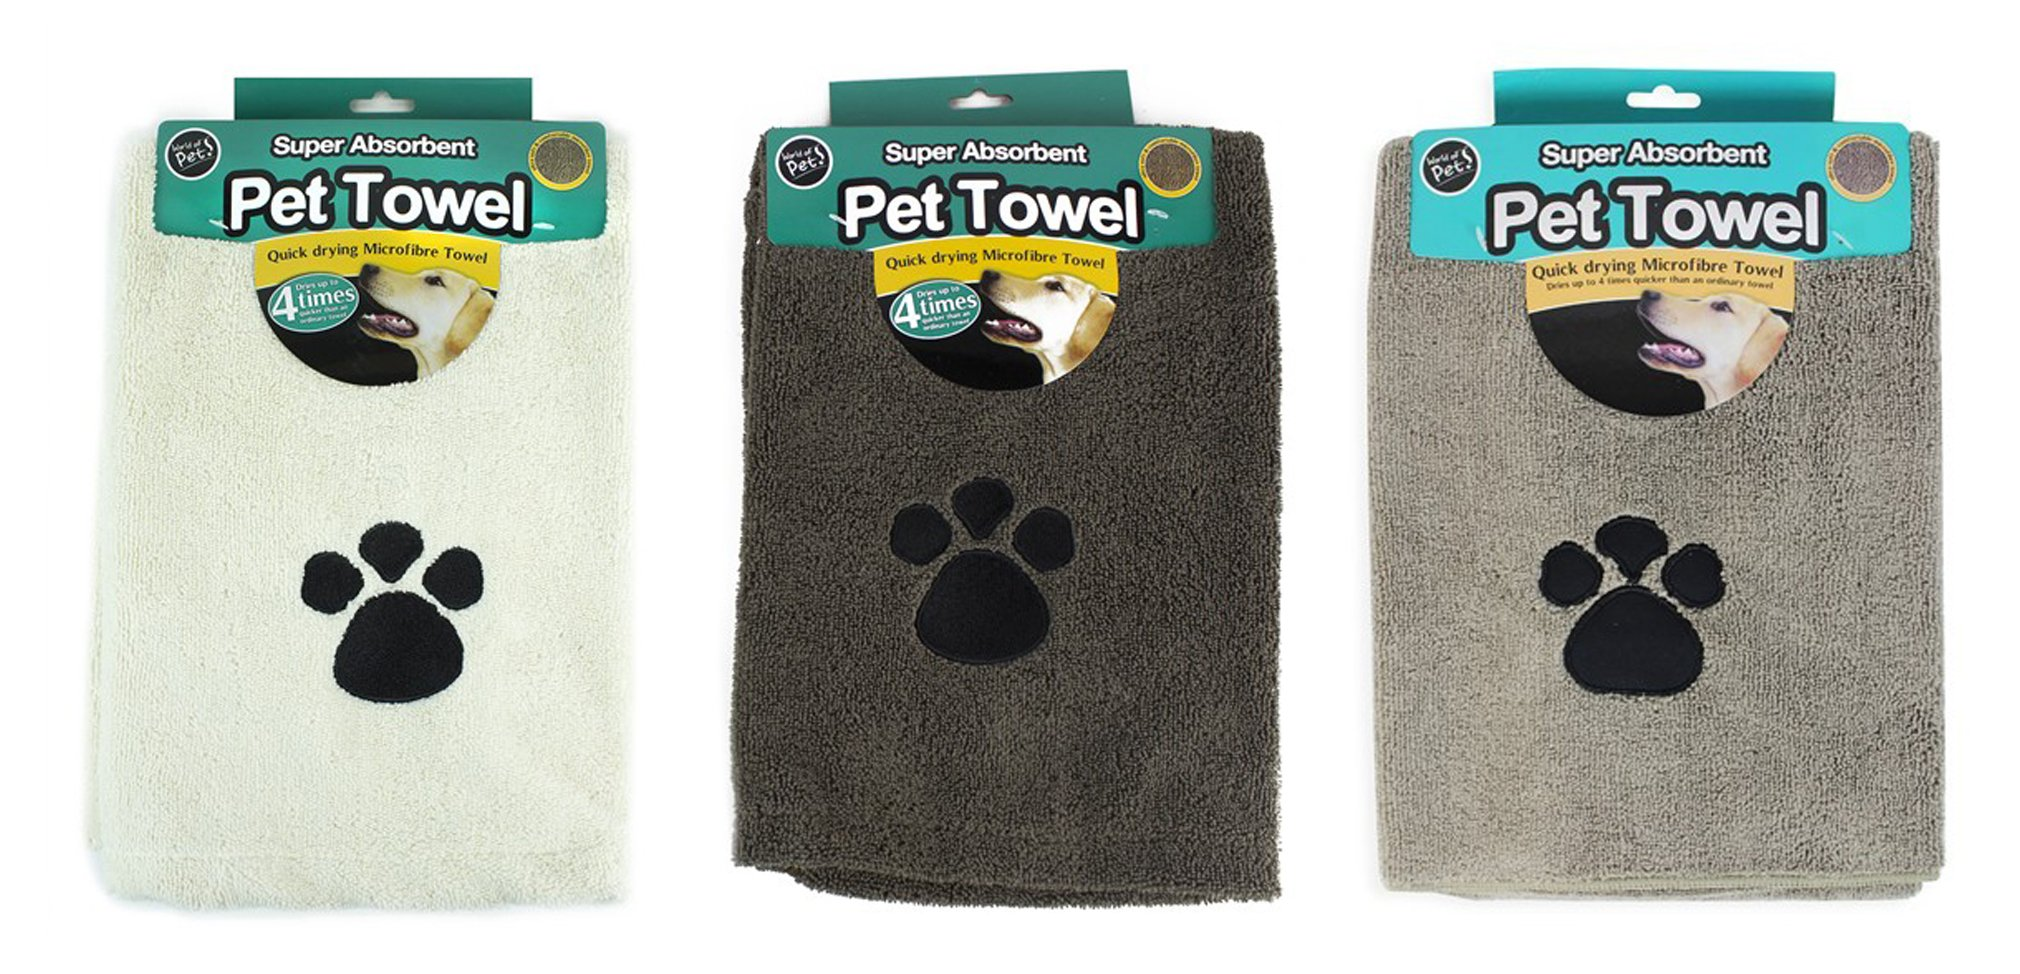 World-of-Pets-Super-Absorbent-and-Quick-Dry-Microfibre-Pet-Towel-100X60CM